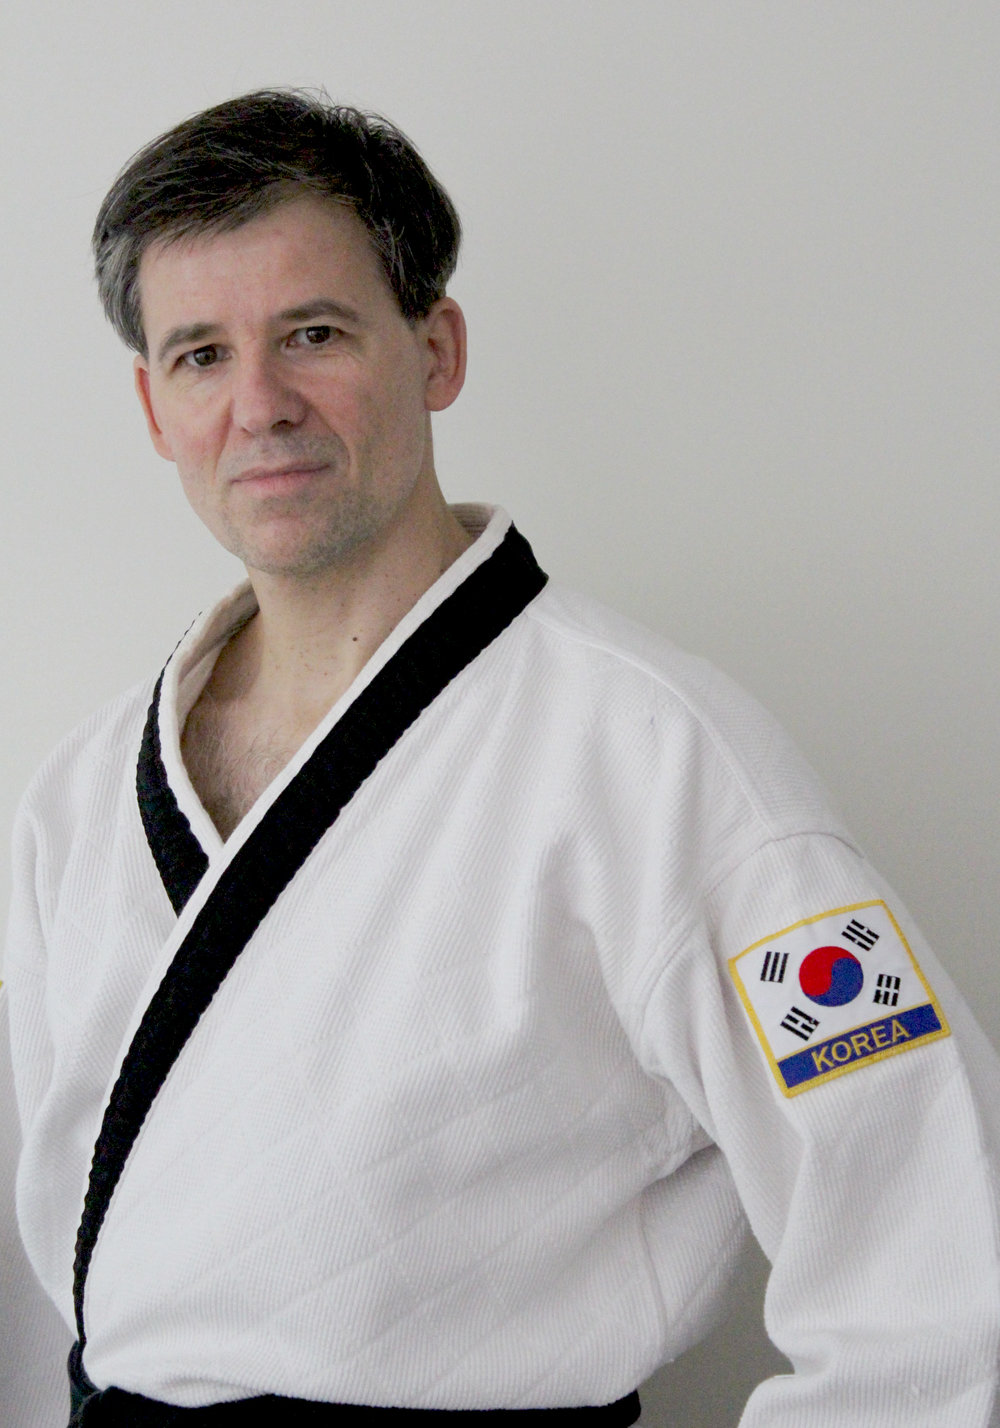 Senior Instructor George Brisset moved from France to the United States in the early 1990s. He trained in Tae Kwon Do in France for 10 years, and has trained in HapKiDo under Master Herbert for 20 years. George recently completed the Tai Chi Instructor's Certification Program.